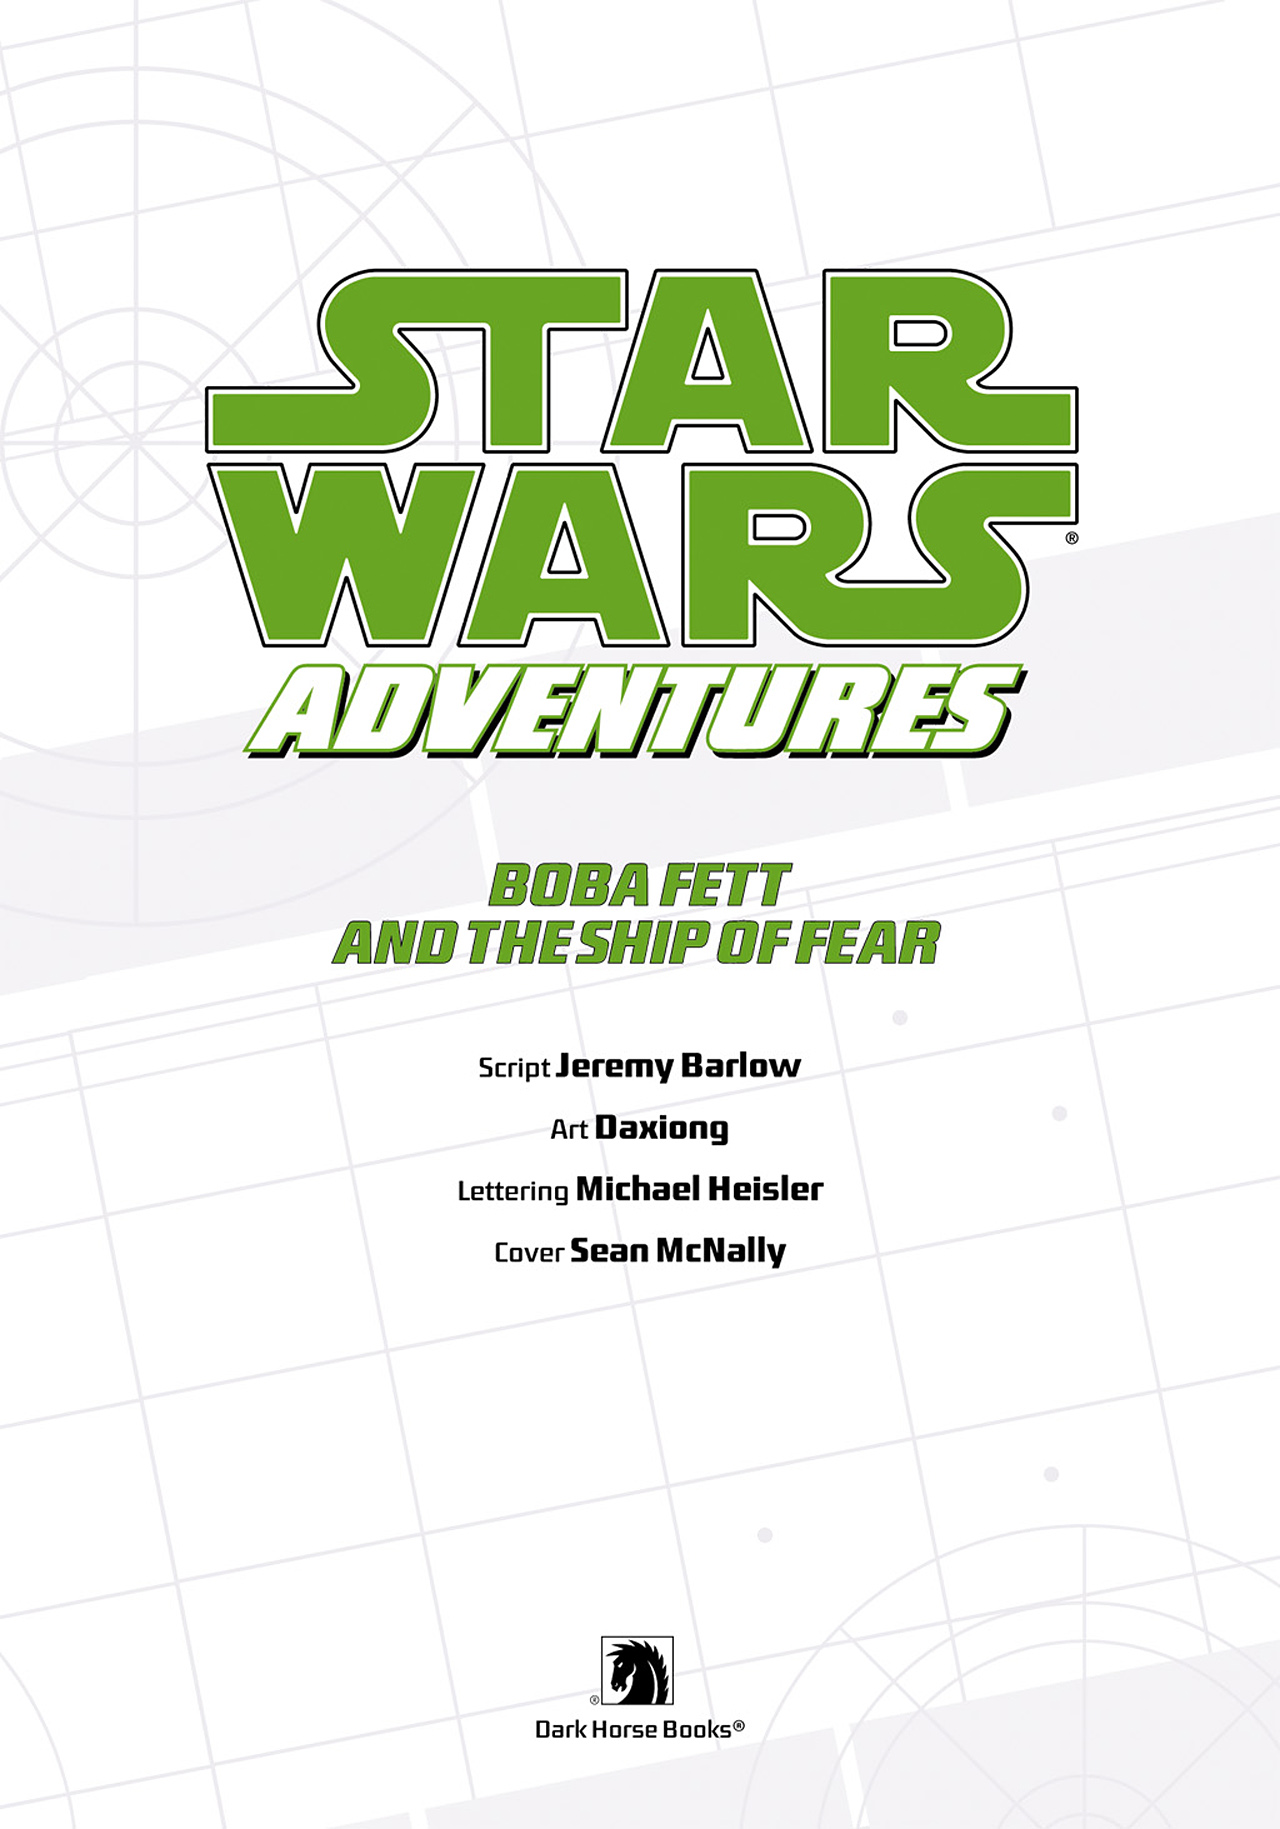 Read online Star Wars Adventures comic -  Issue # Issue Boba Fett and the Ship of Fear - 4